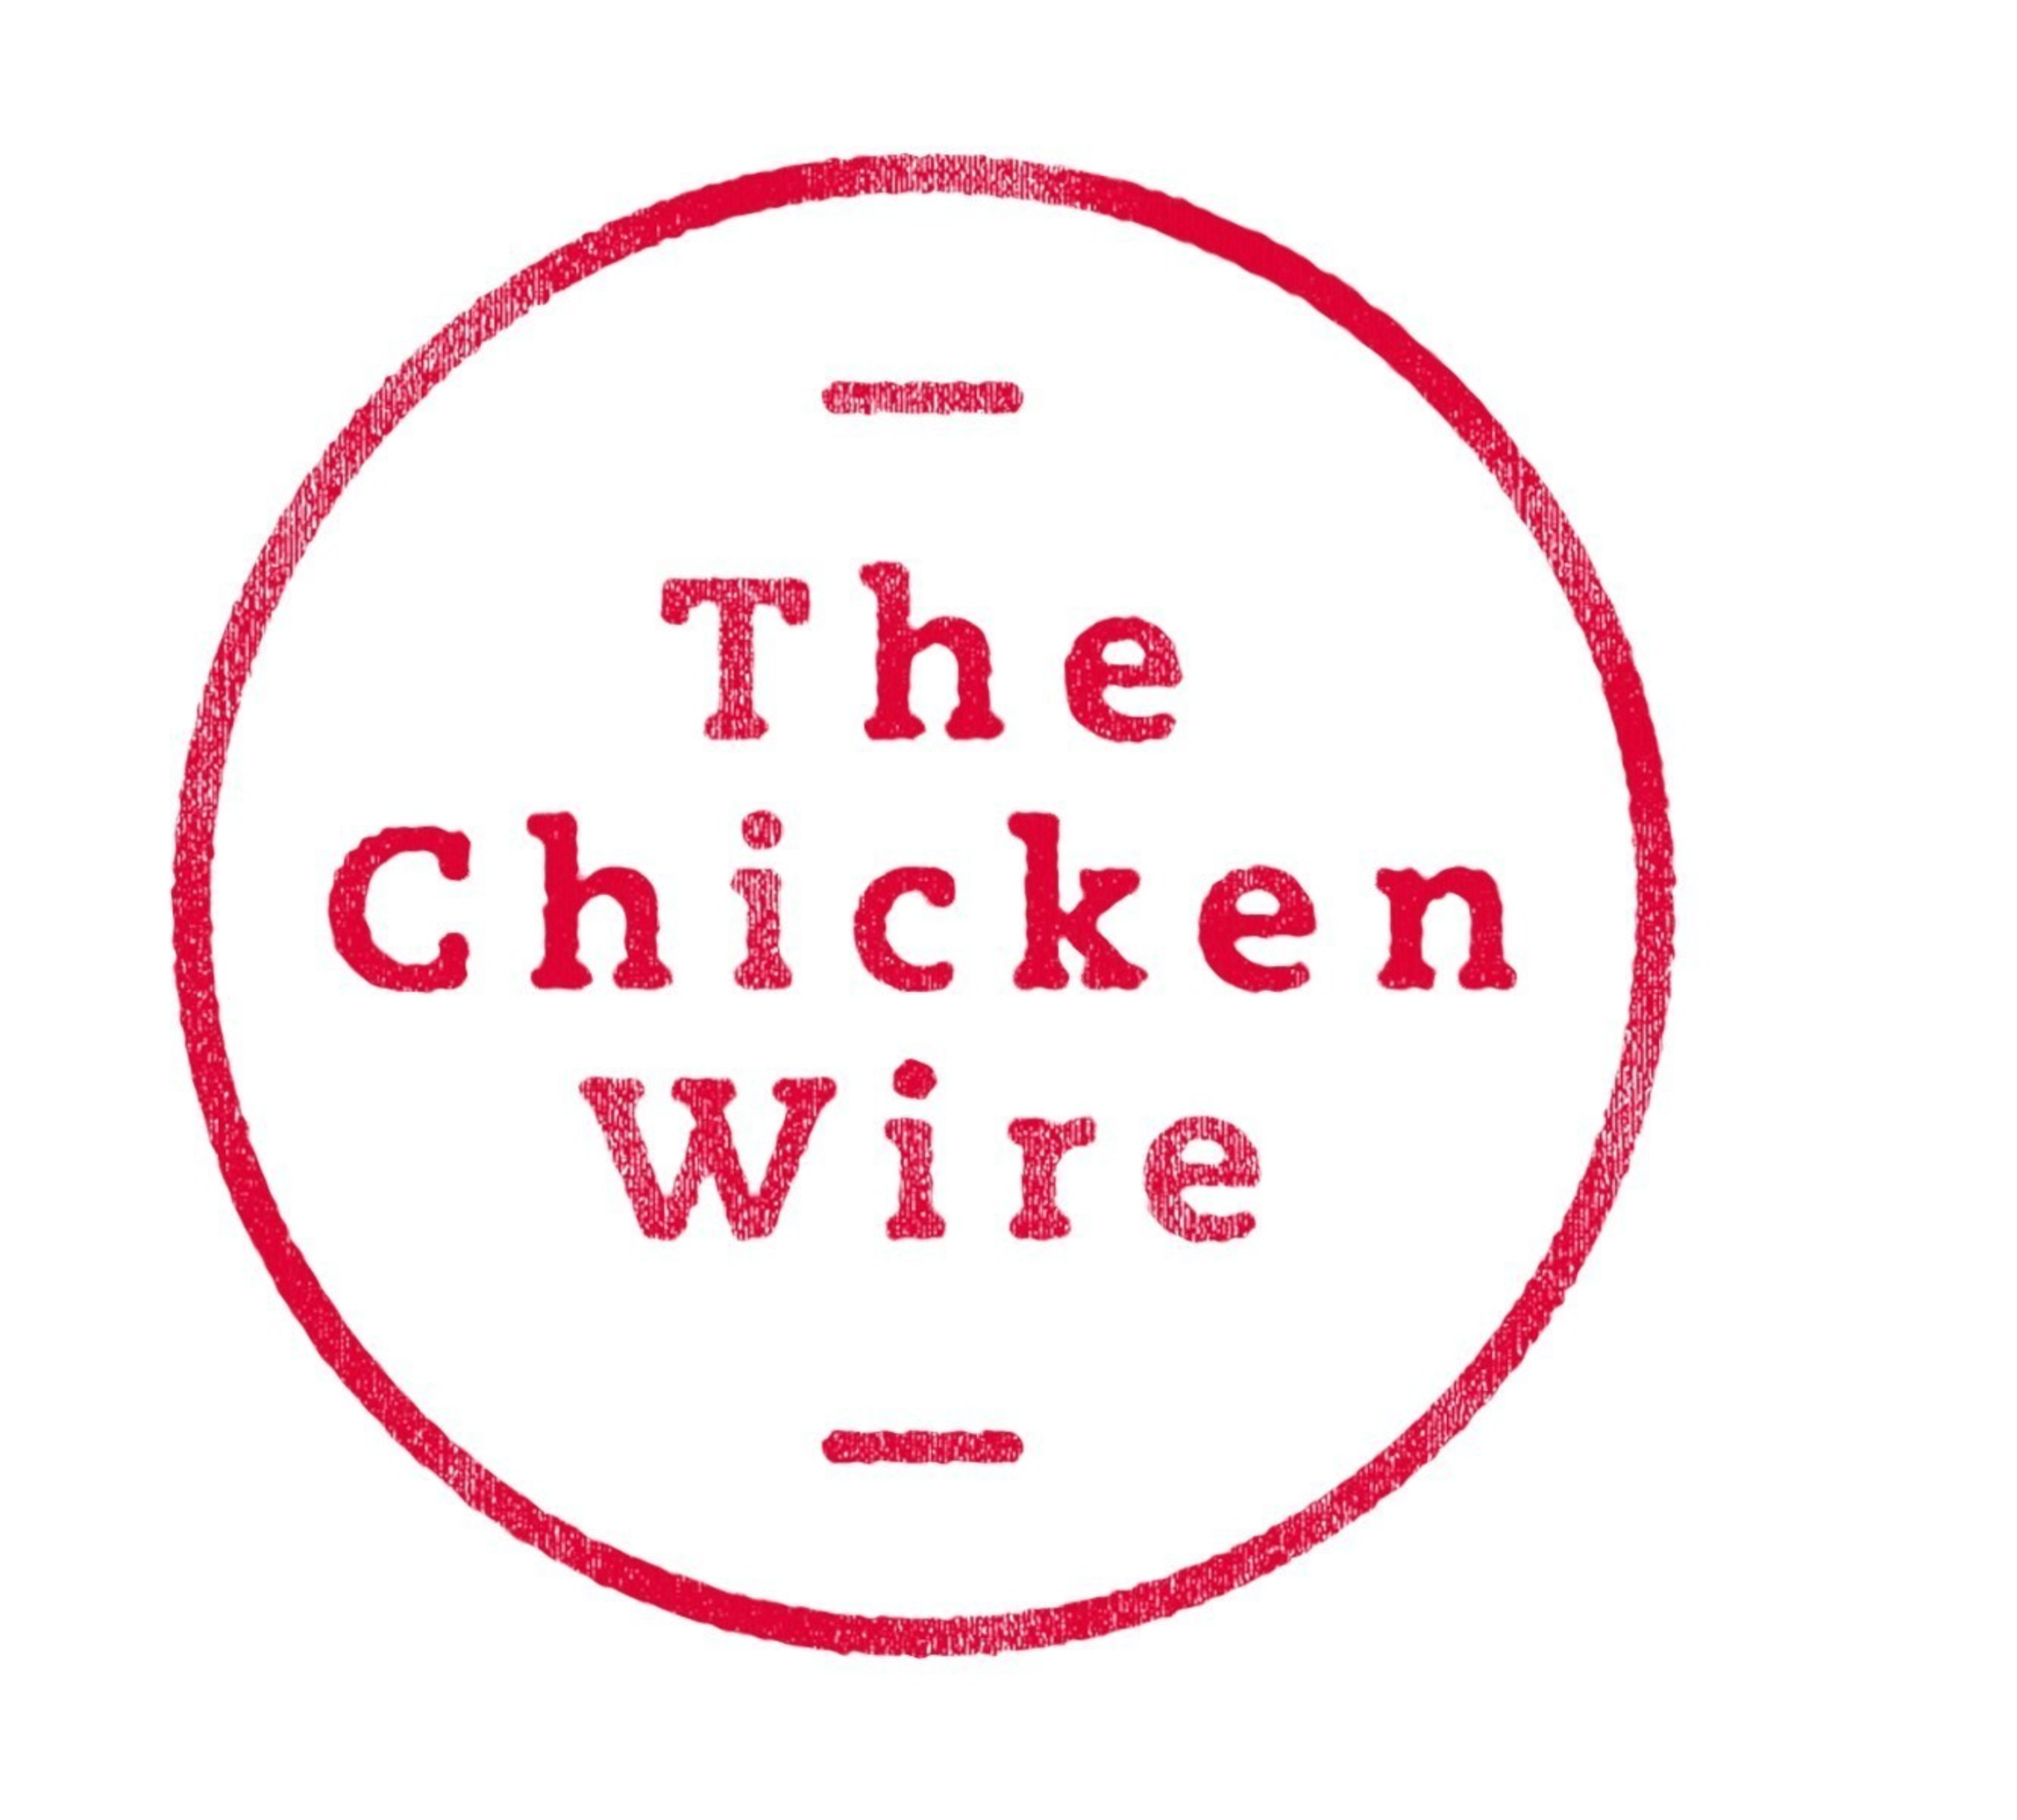 The new chick-fil-a.com houses an embedded publication, called The Chicken Wire, that provides visitors with both branded and unbranded stories.